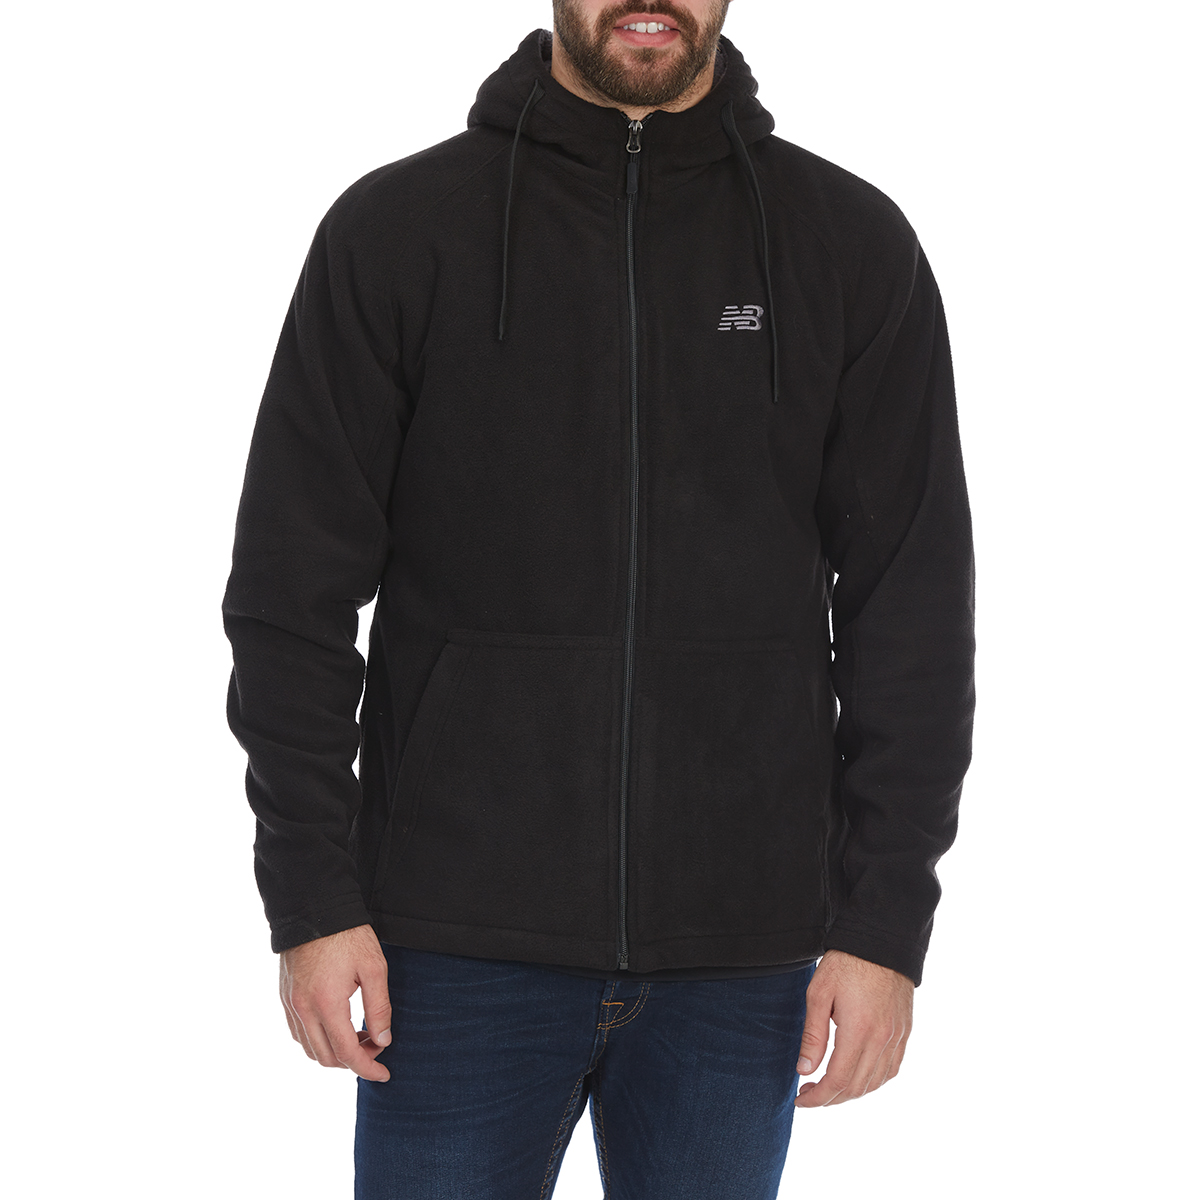 New Balance Men's Sherpa-Lined Polar Fleece Full-Zip Hoodie - Black, M